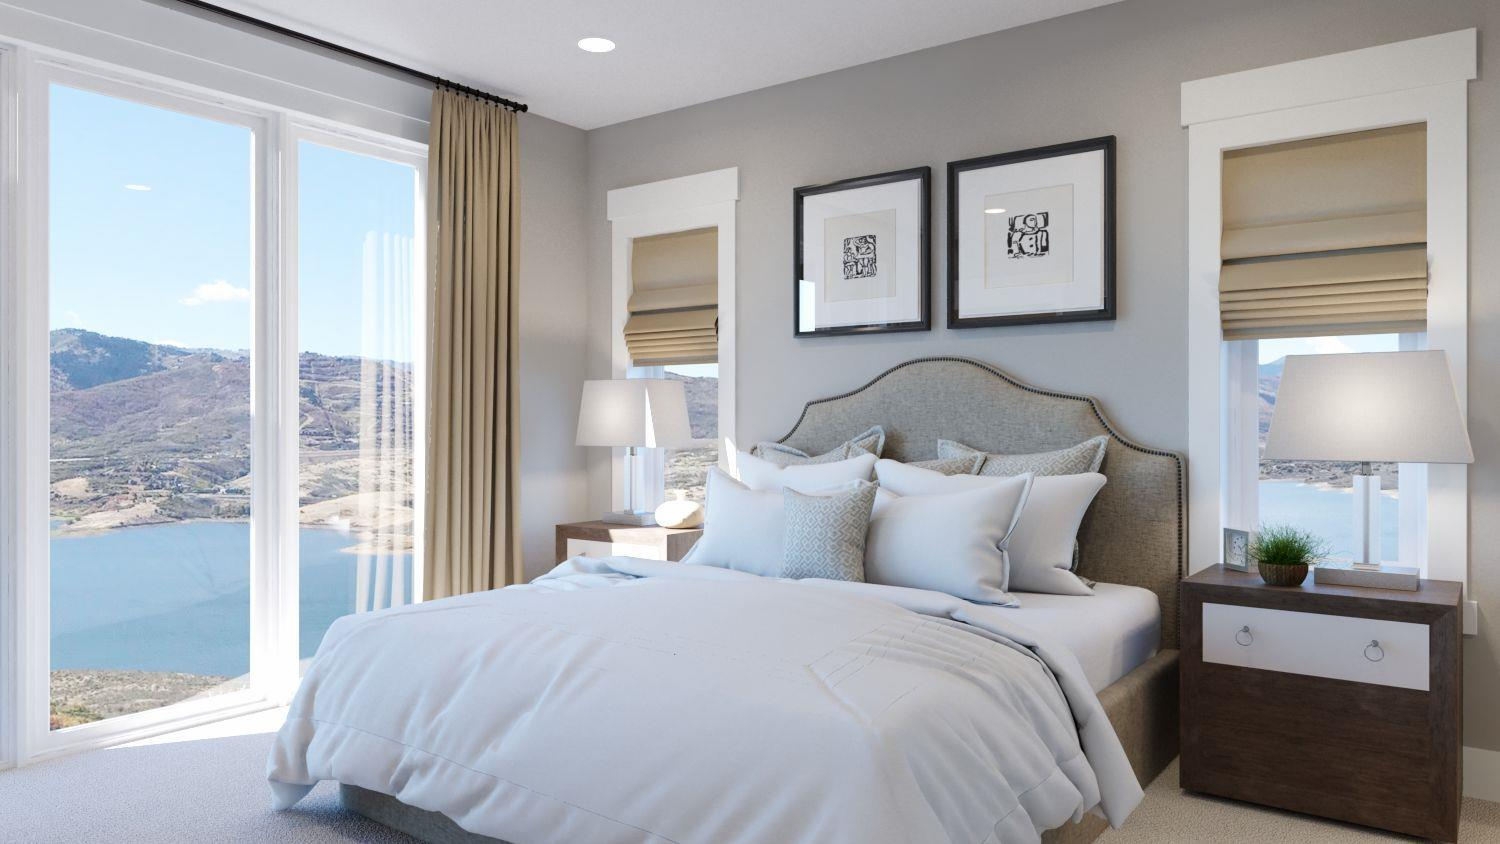 Bedroom featured in the Brighton By GCD in Salt Lake City-Ogden, UT